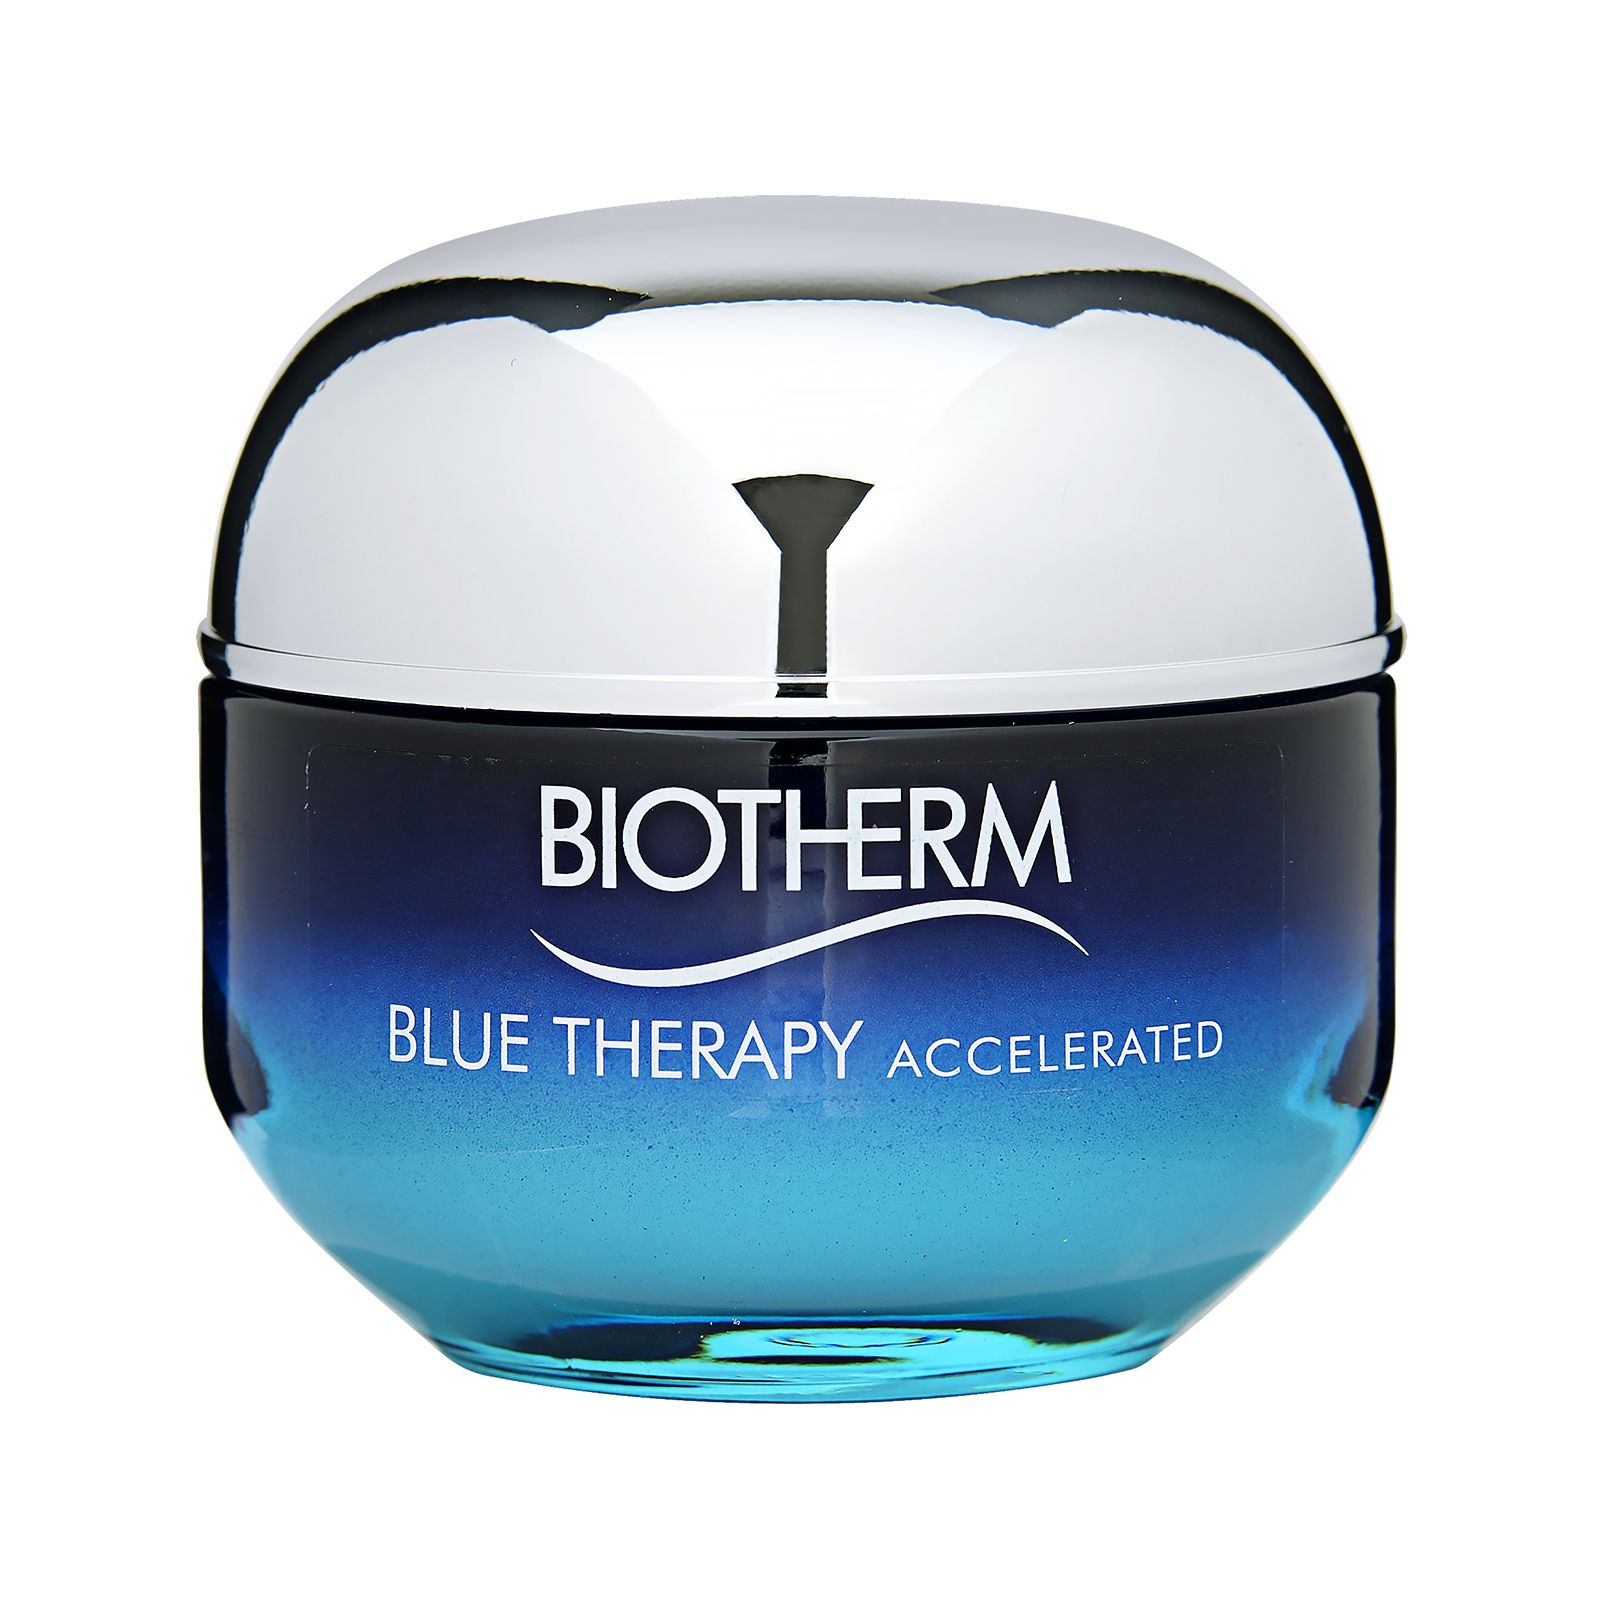 Biotherm Biotherm Blue Therapy Accelerated Cream Click To Go To Skincaredupes Com To View Possible Dupes Biotherm Blue Therapy Biotherm Niacinamide Skincare